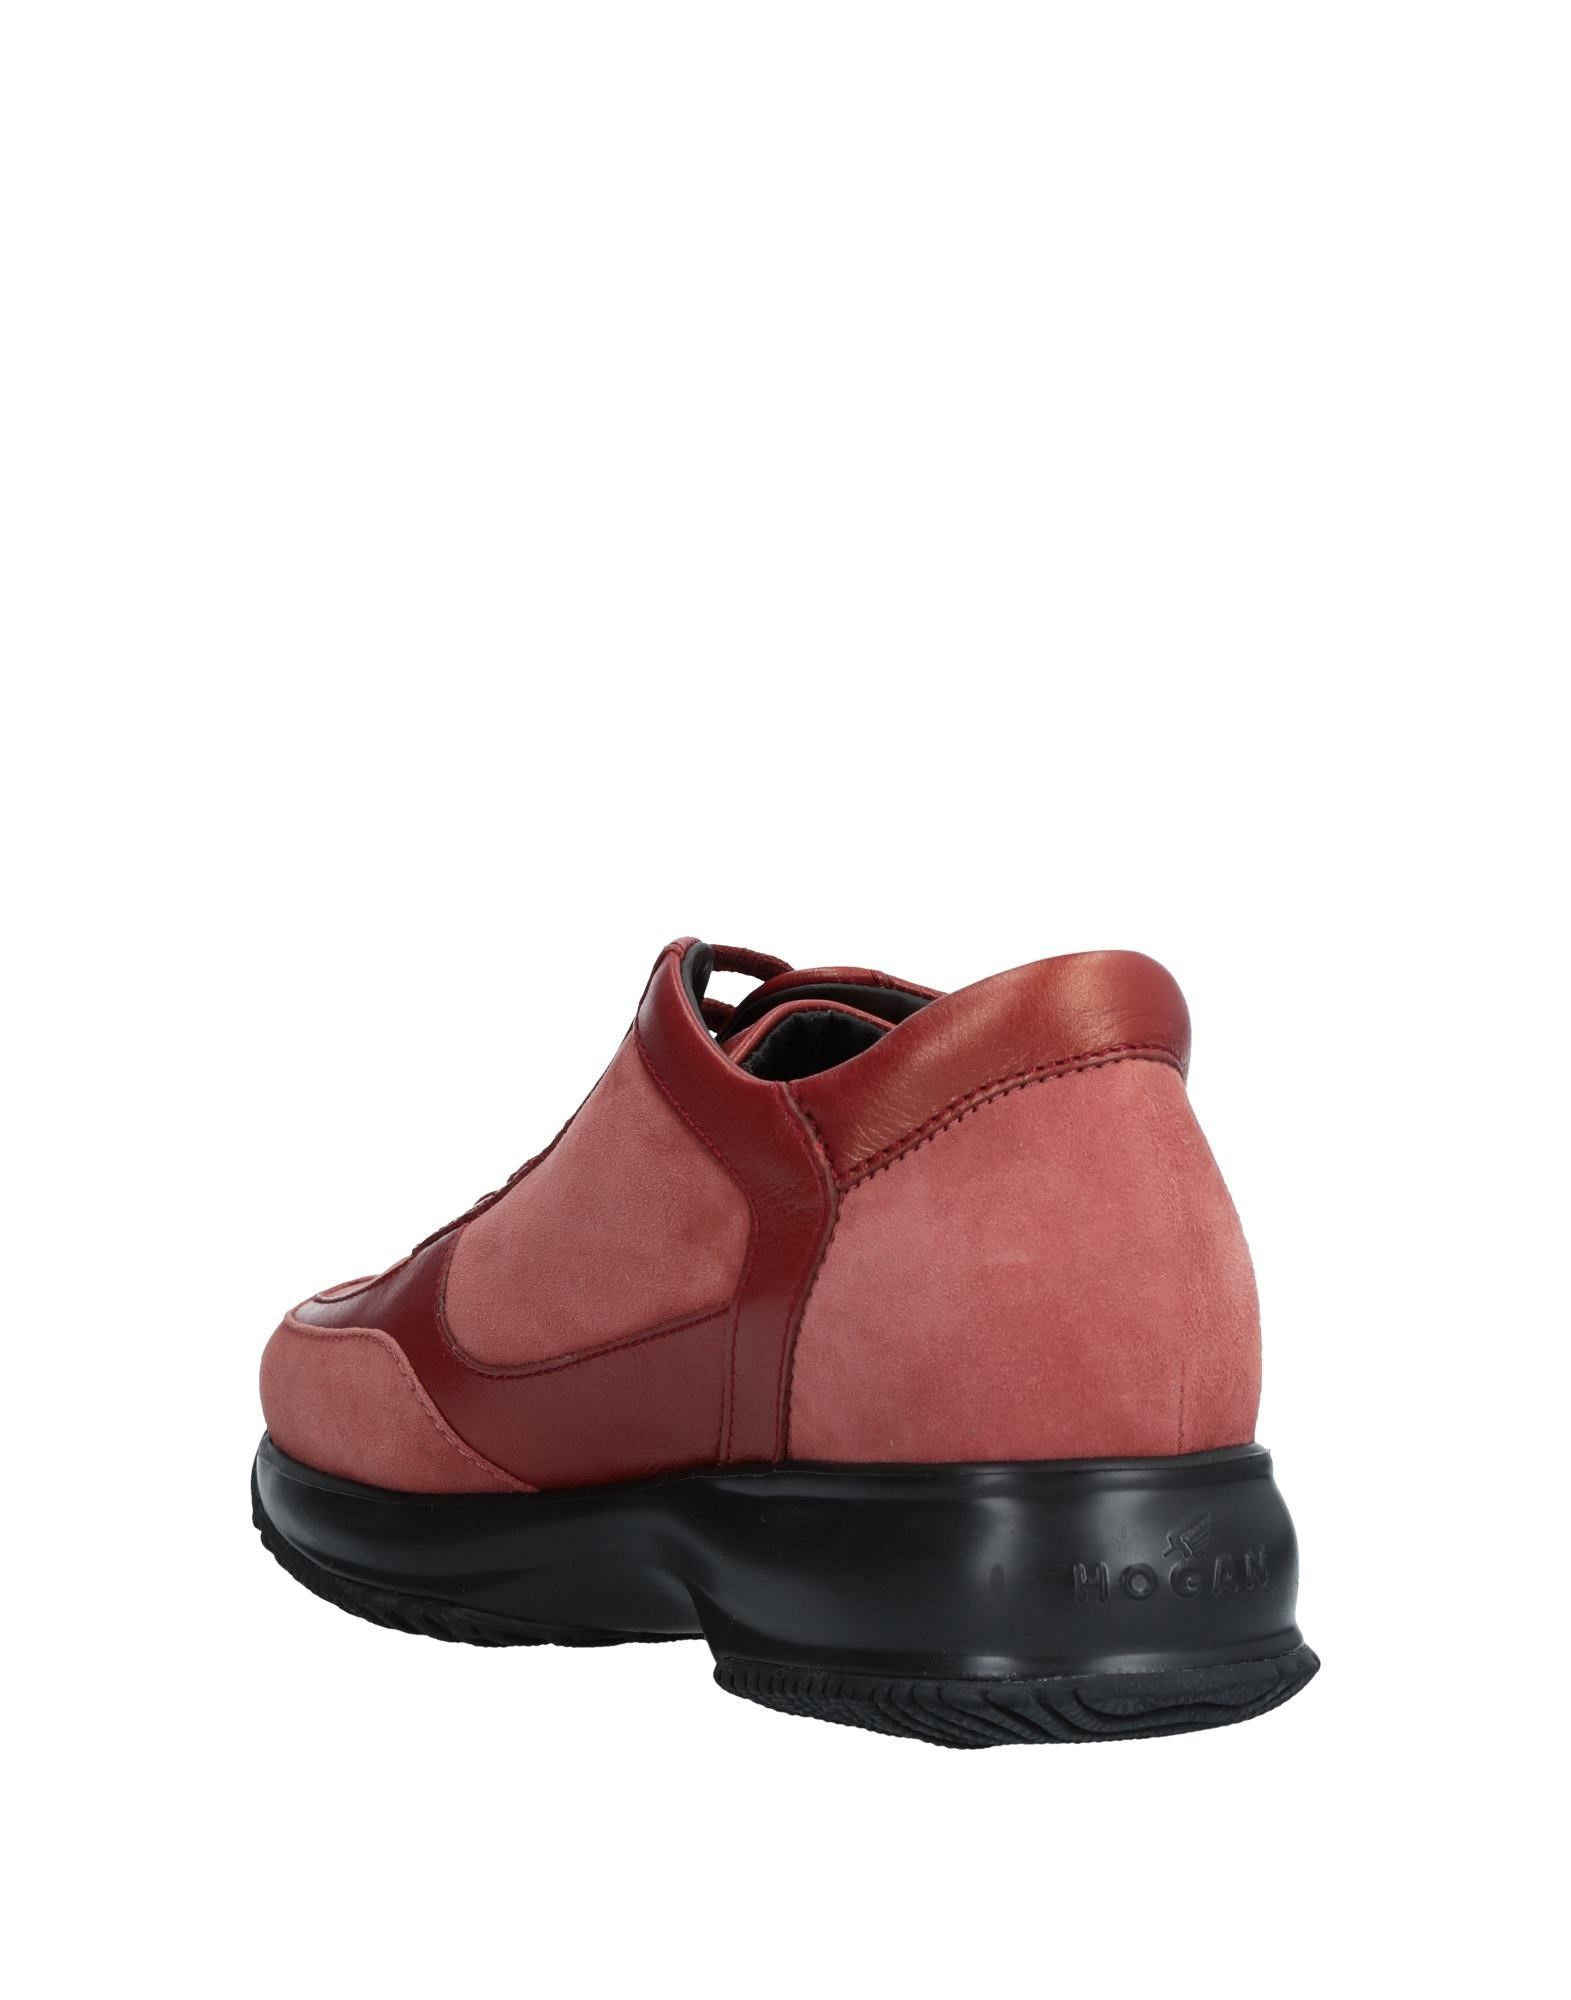 Hogan Sneakers - Women Hogan Sneakers Sneakers Sneakers online on  United Kingdom - 44596857LK 9ece46